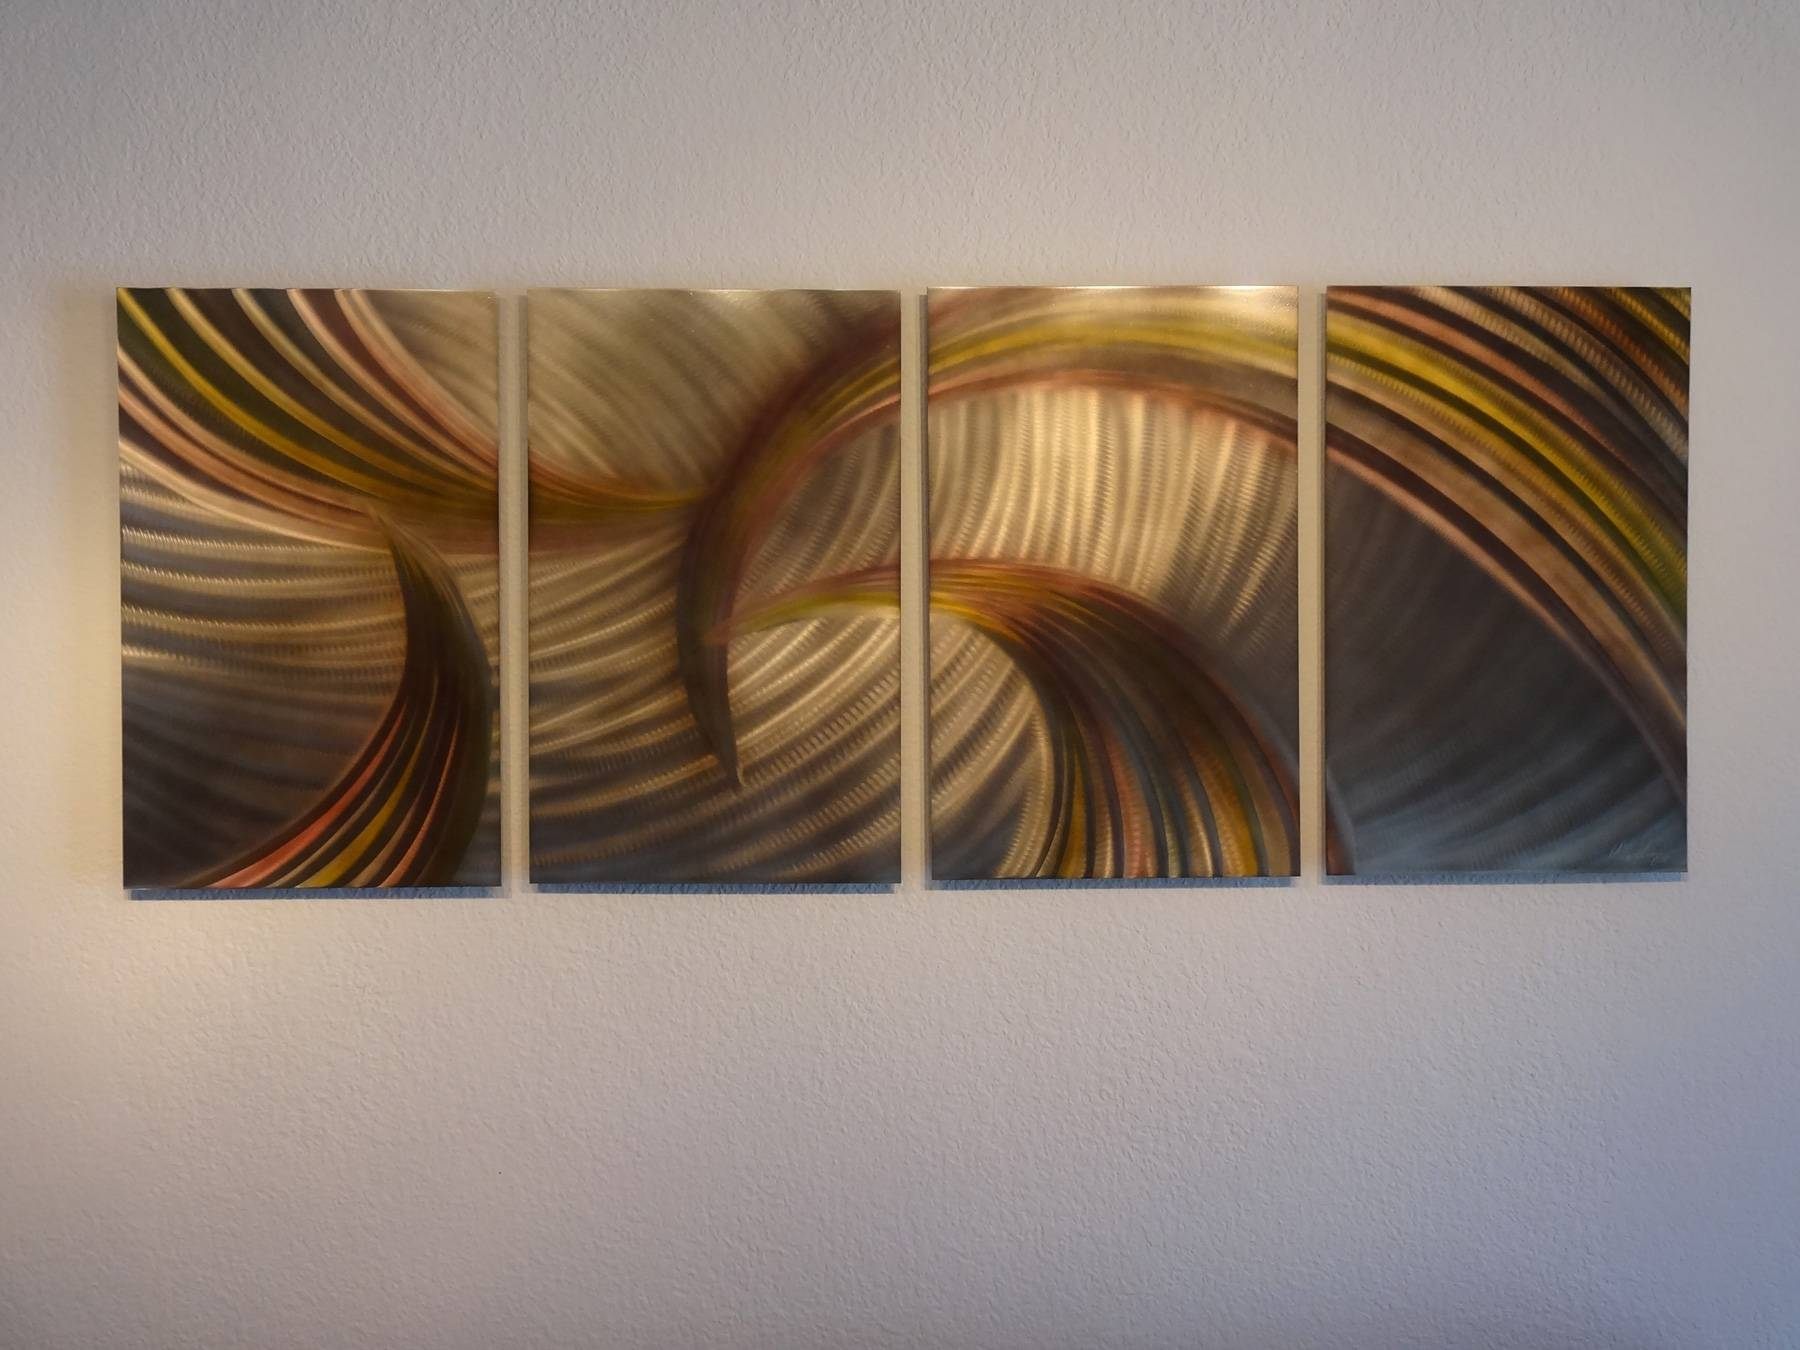 Tempest Bronze – Abstract Metal Wall Art Contemporary Modern Decor Pertaining To Most Current Bronze Metal Wall Art (View 14 of 20)